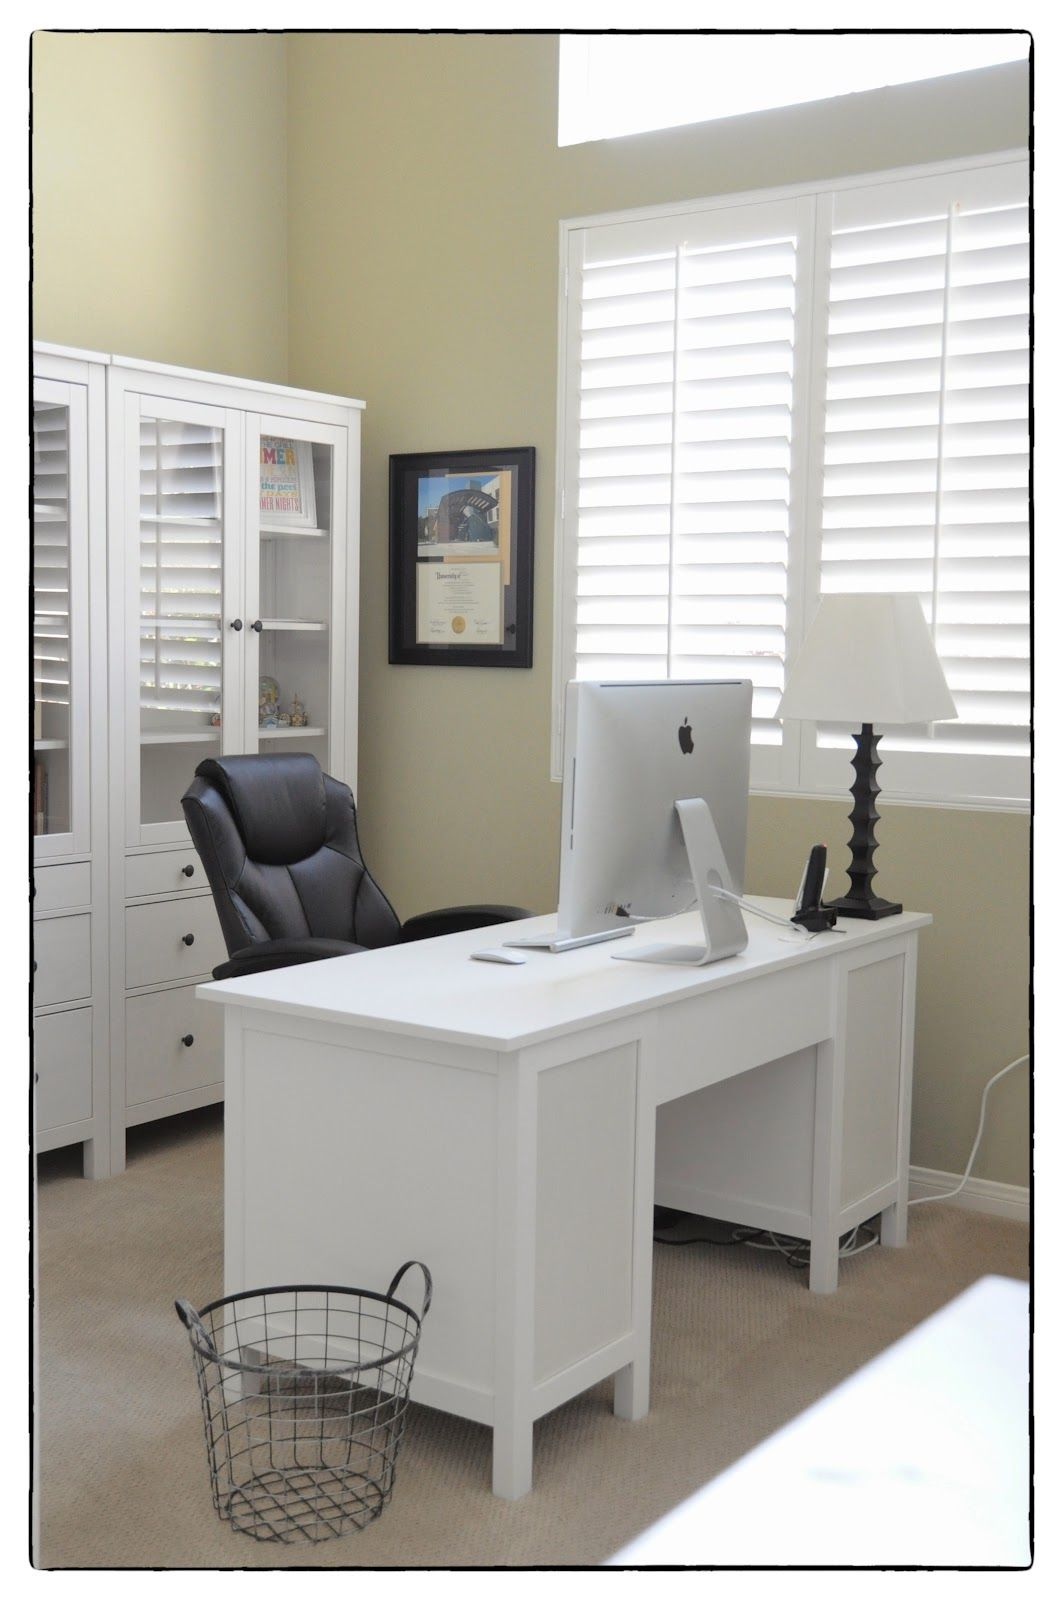 1aea923545ac Ikeas Hemnes cabinets and office perfectness. Except the trash can would  get trash... And not be cute